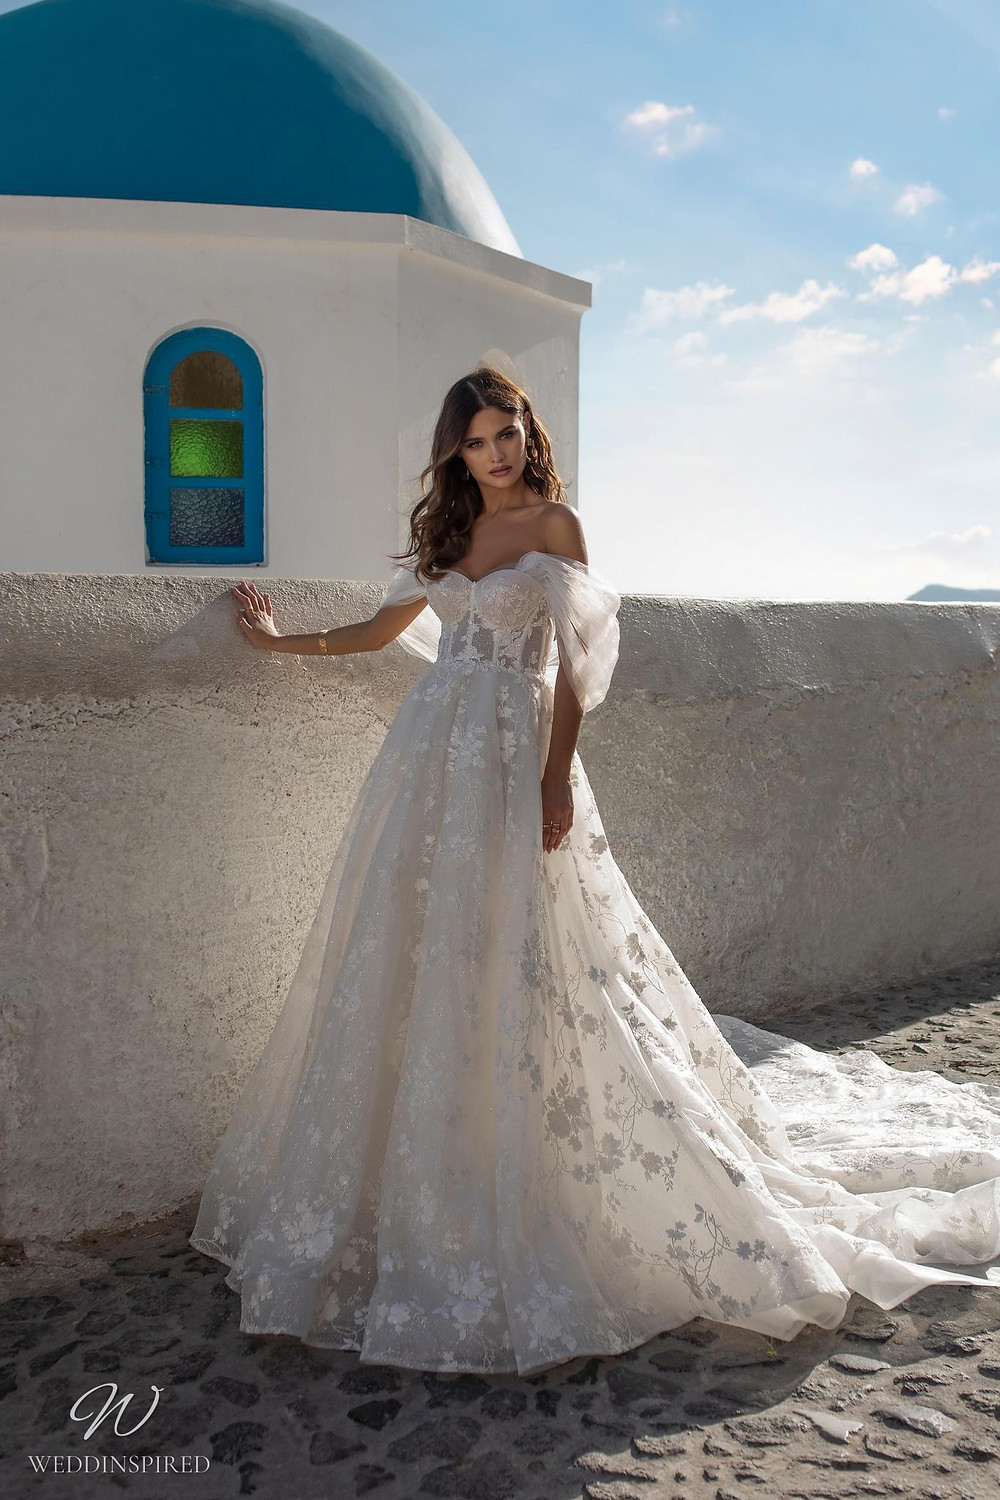 A Ricca Sposa off the shoulder lace and tulle romantic ball gown wedding dress